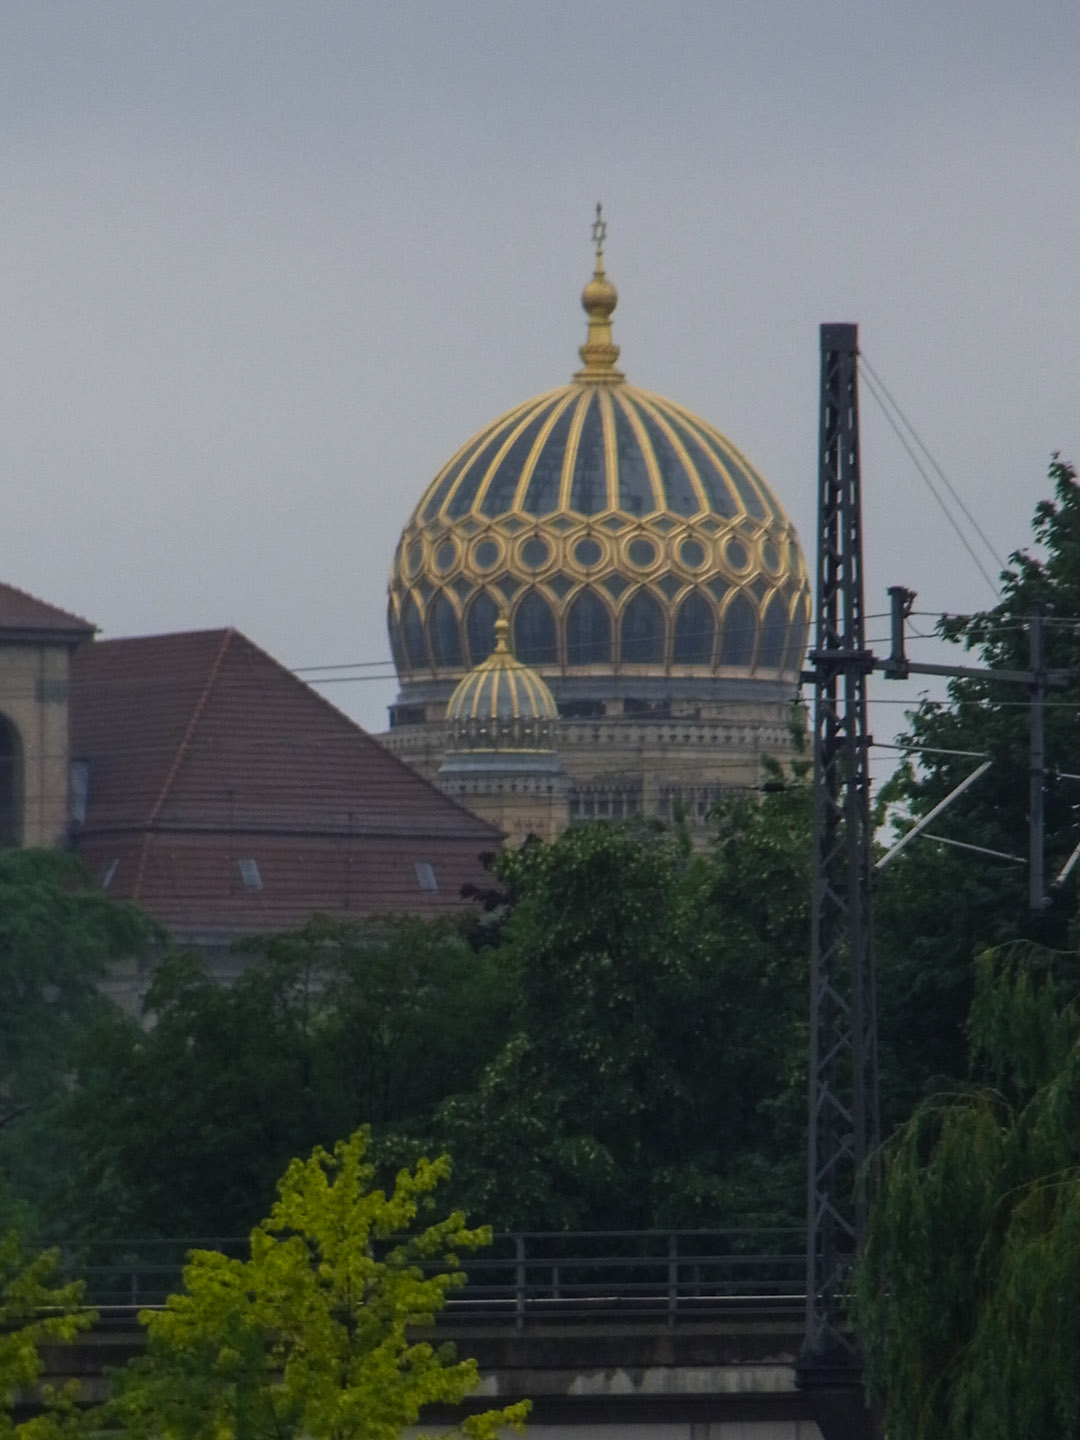 Dome of the Neue Synagoge